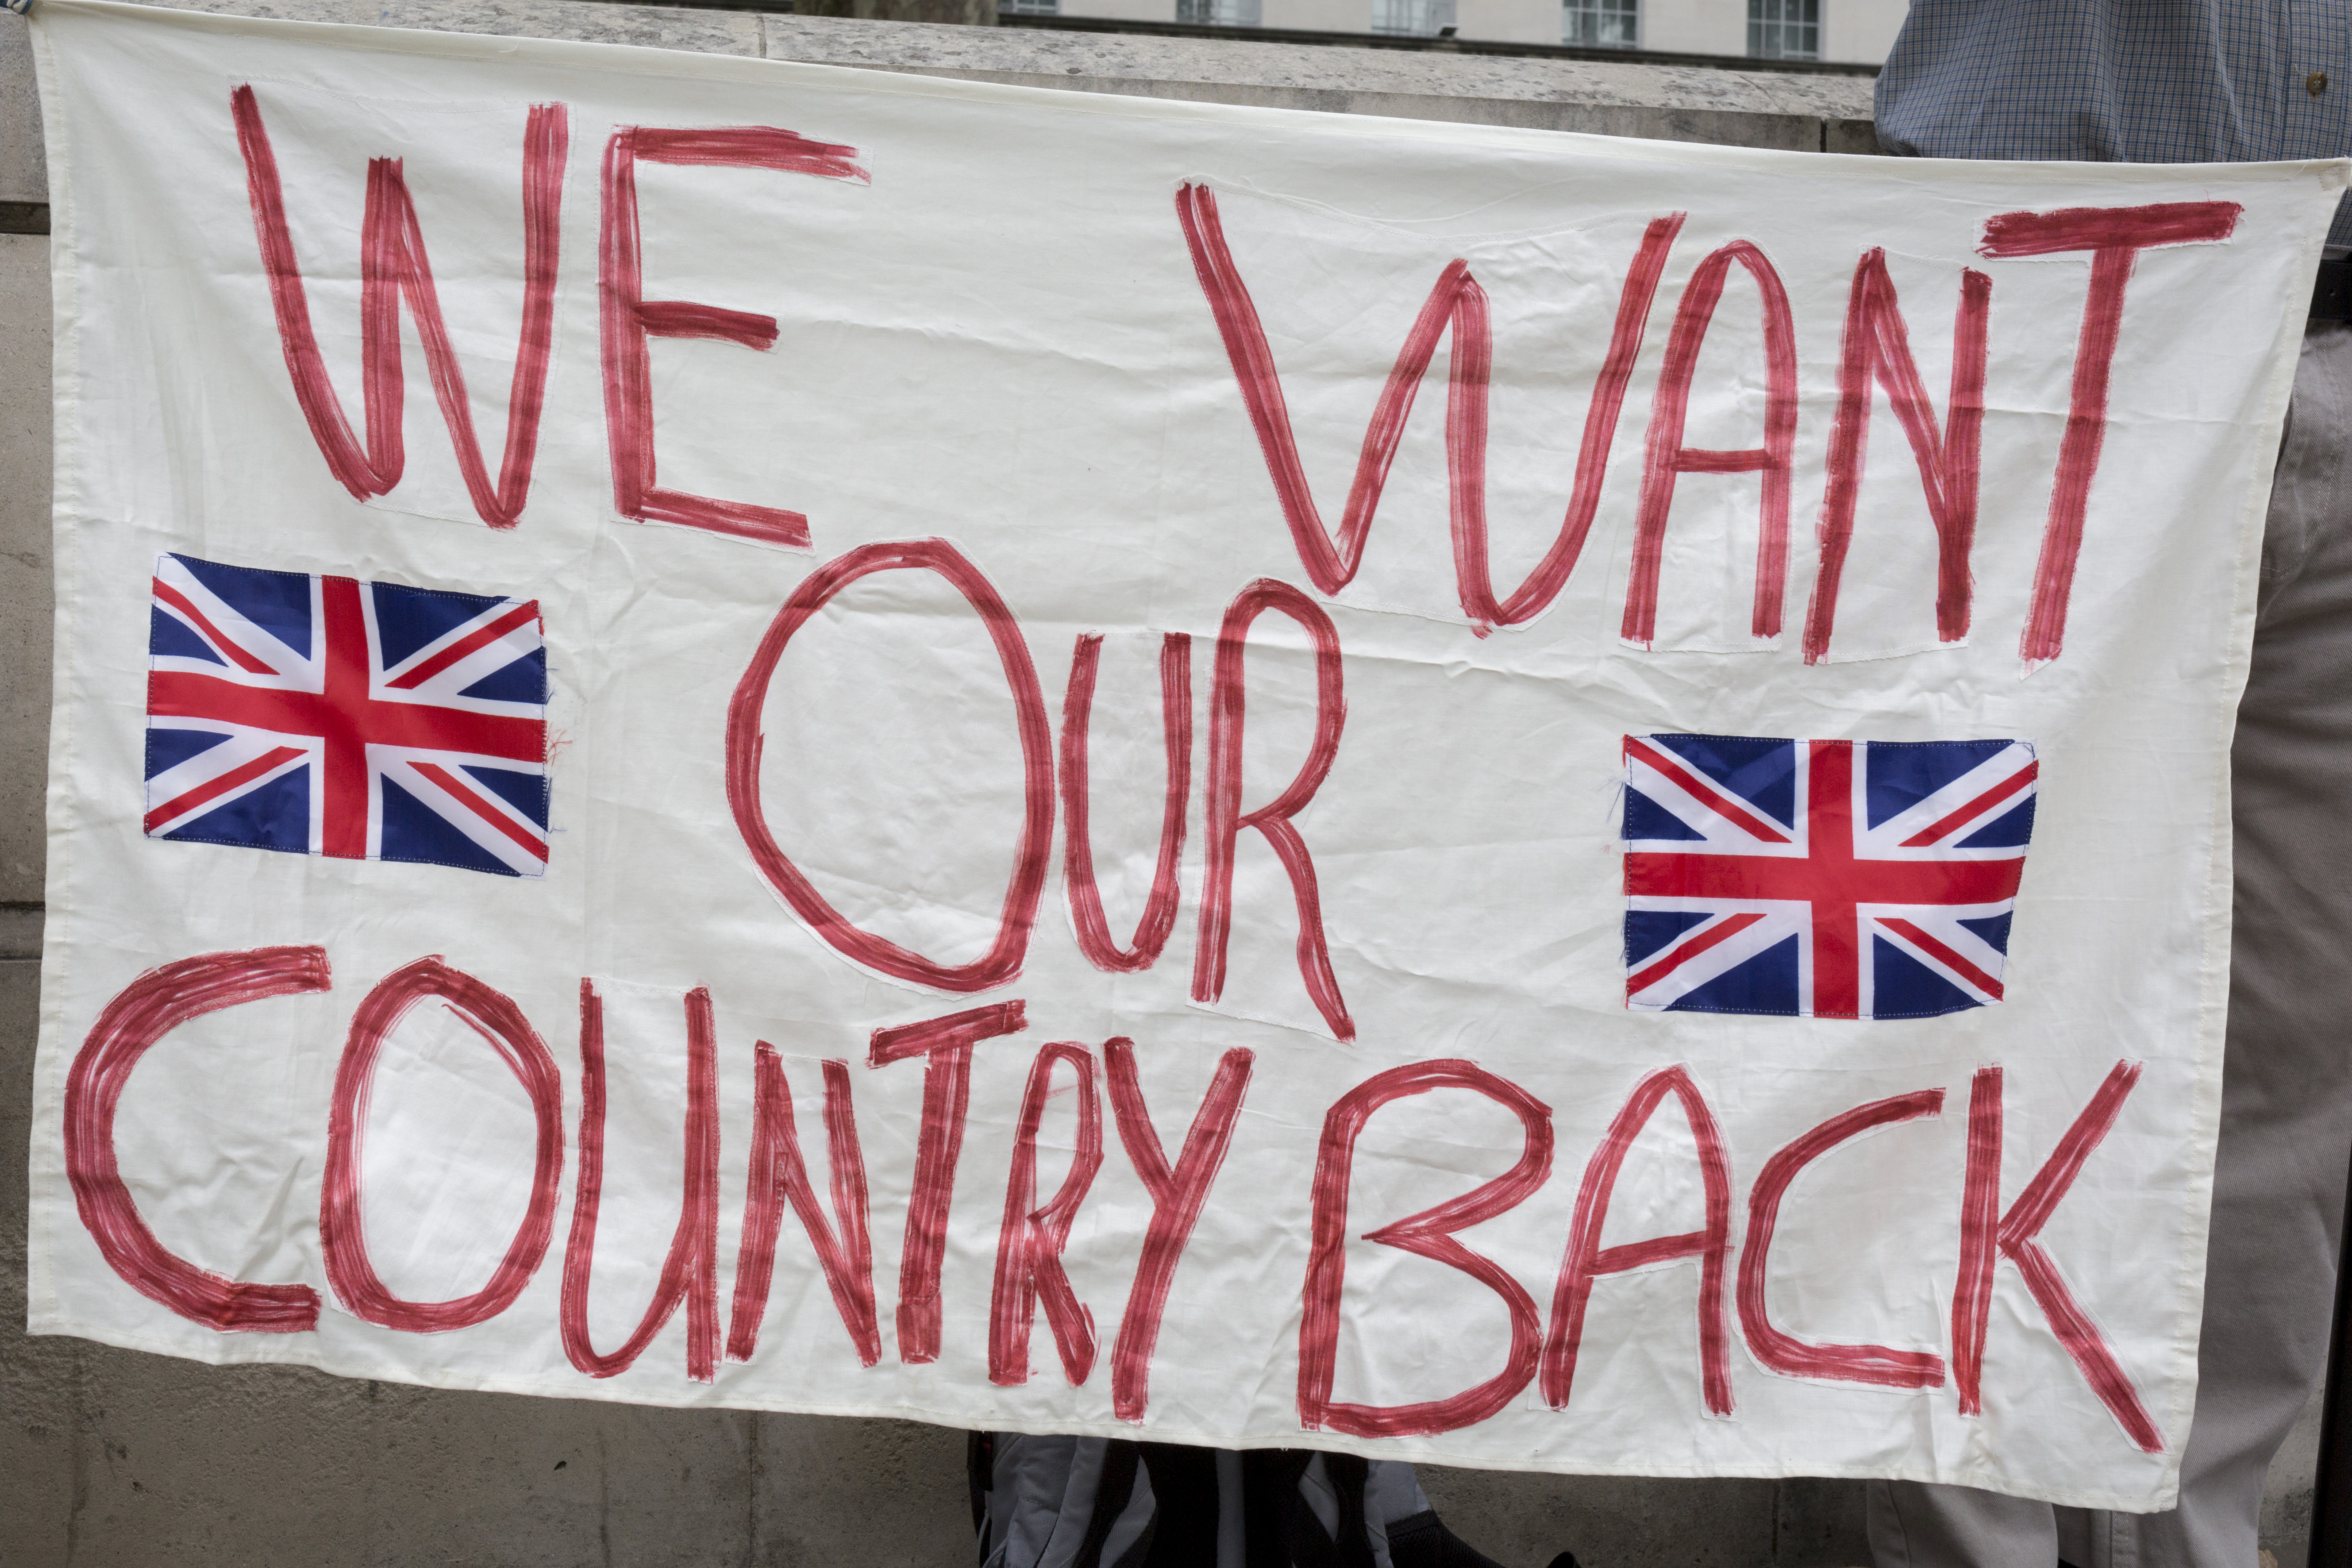 On the day that British Prime Minister Boris Johnson sought to have Parliament suspended by Queen Elizabeth, days after MPs return to work in September - and only a few weeks before the Brexit deadline, Leave voters protest with their We Want Our Country Back banners opposite the Cabinet Office where daily Brexit contingency planning meetings take place, on 28th August 2019, in Whitehall, Westminster, London, England. (Photo by Richard Baker / In Pictures via Getty Images)